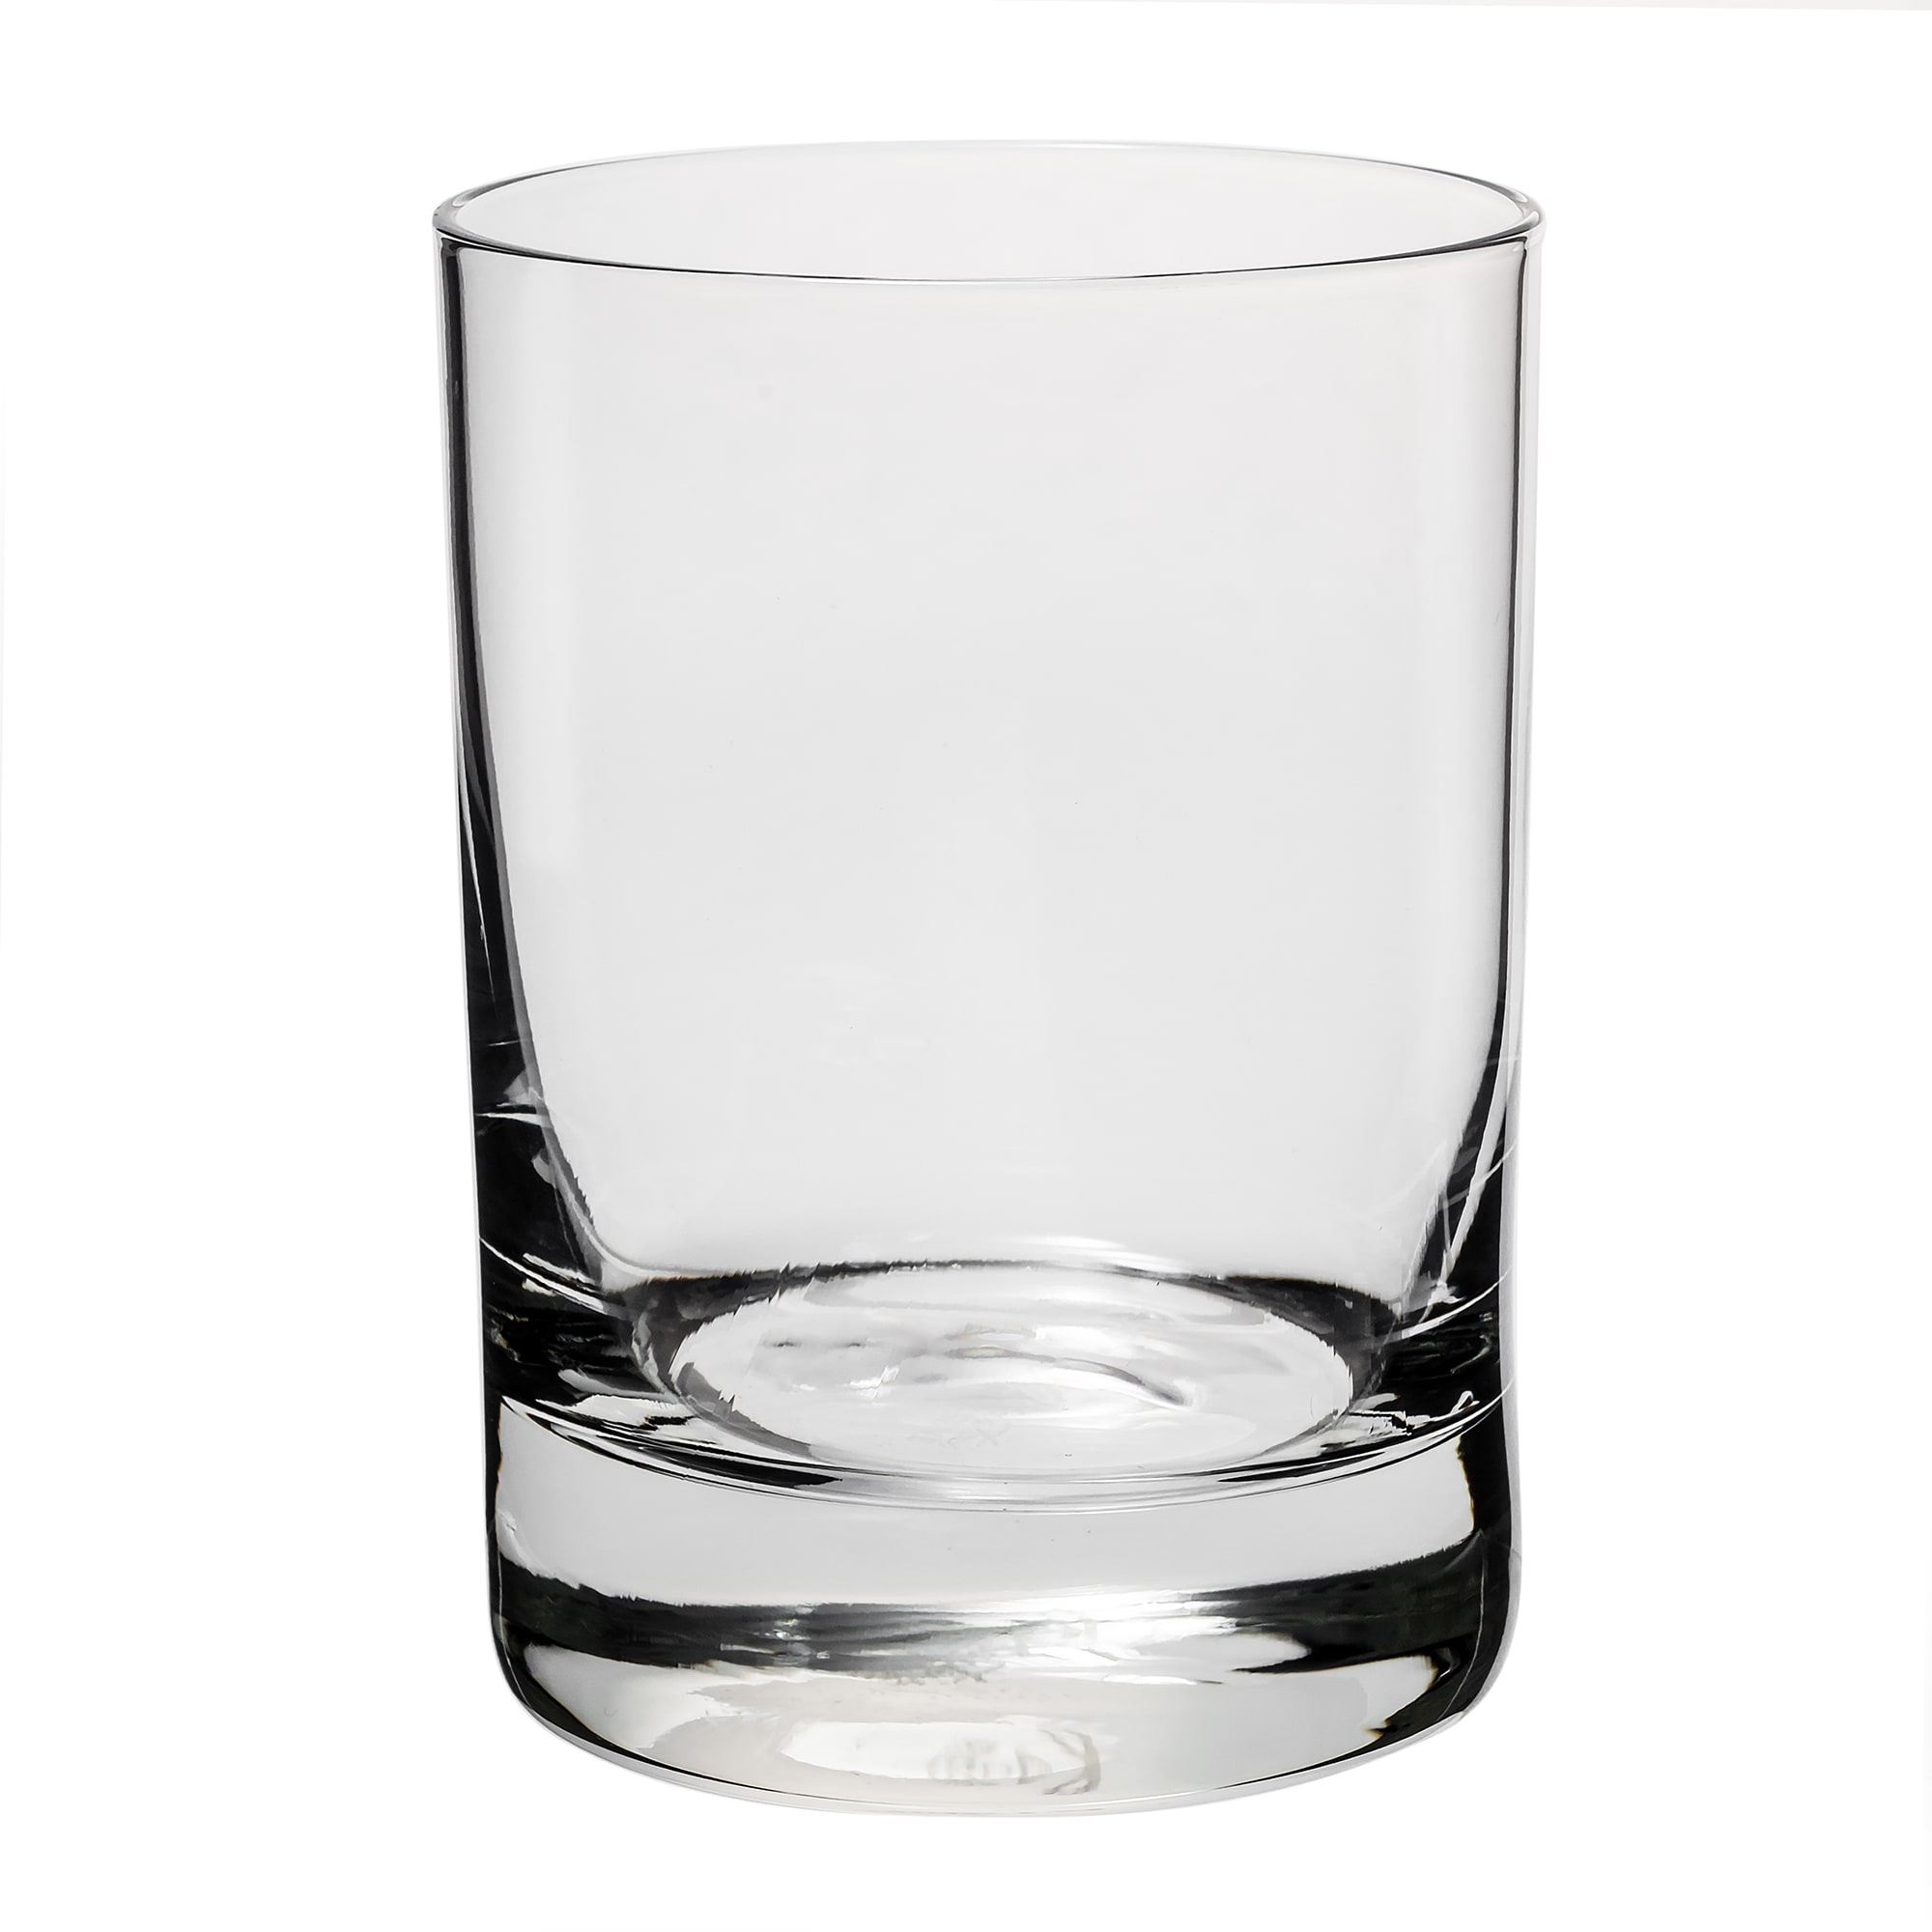 Libbey 9035 10.5-oz Rocks Glass - Modernist